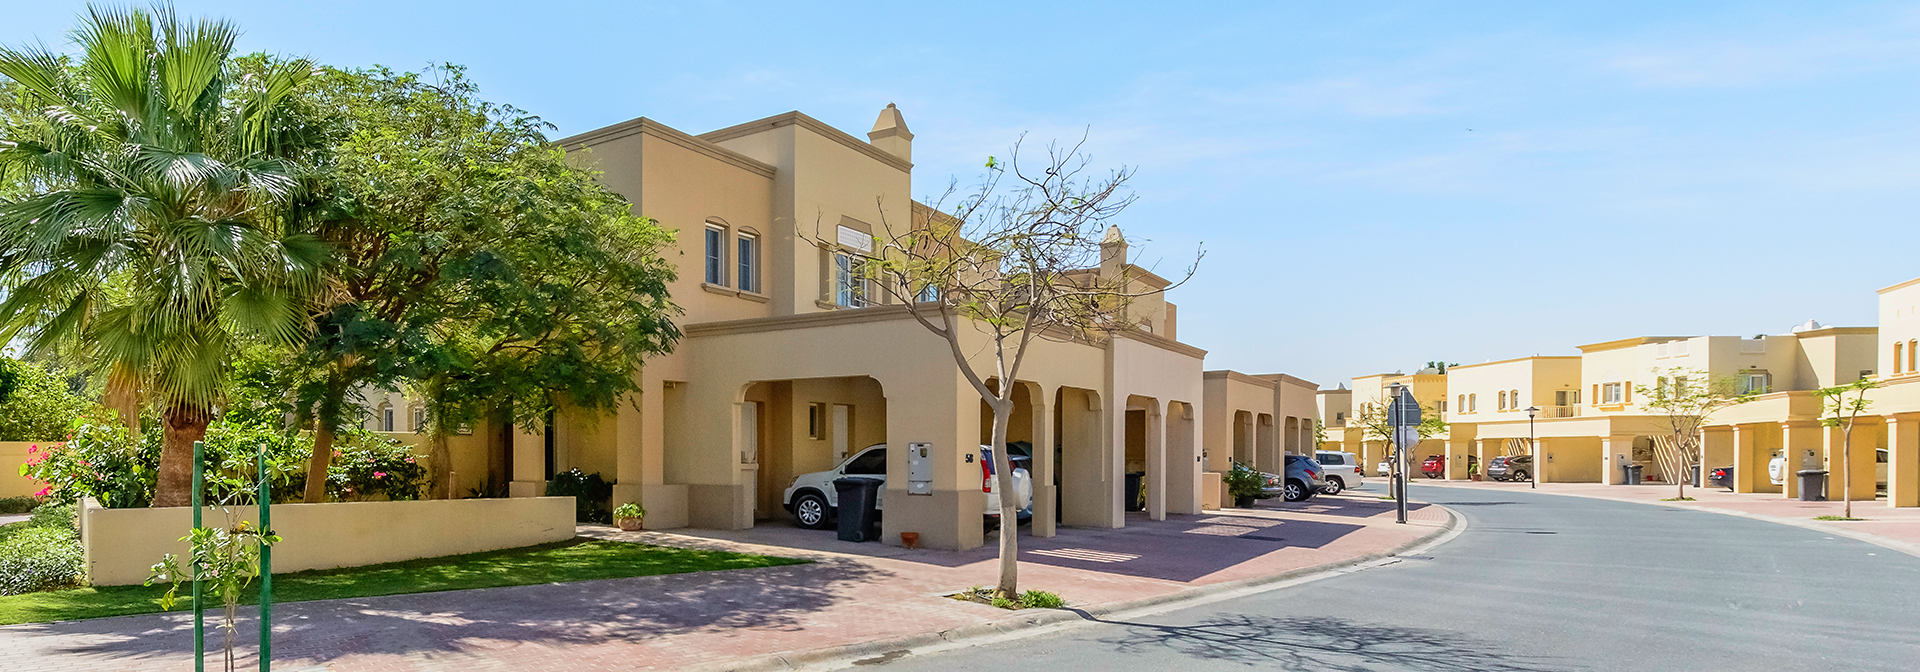 Springs | CORE Real Estate Dubai